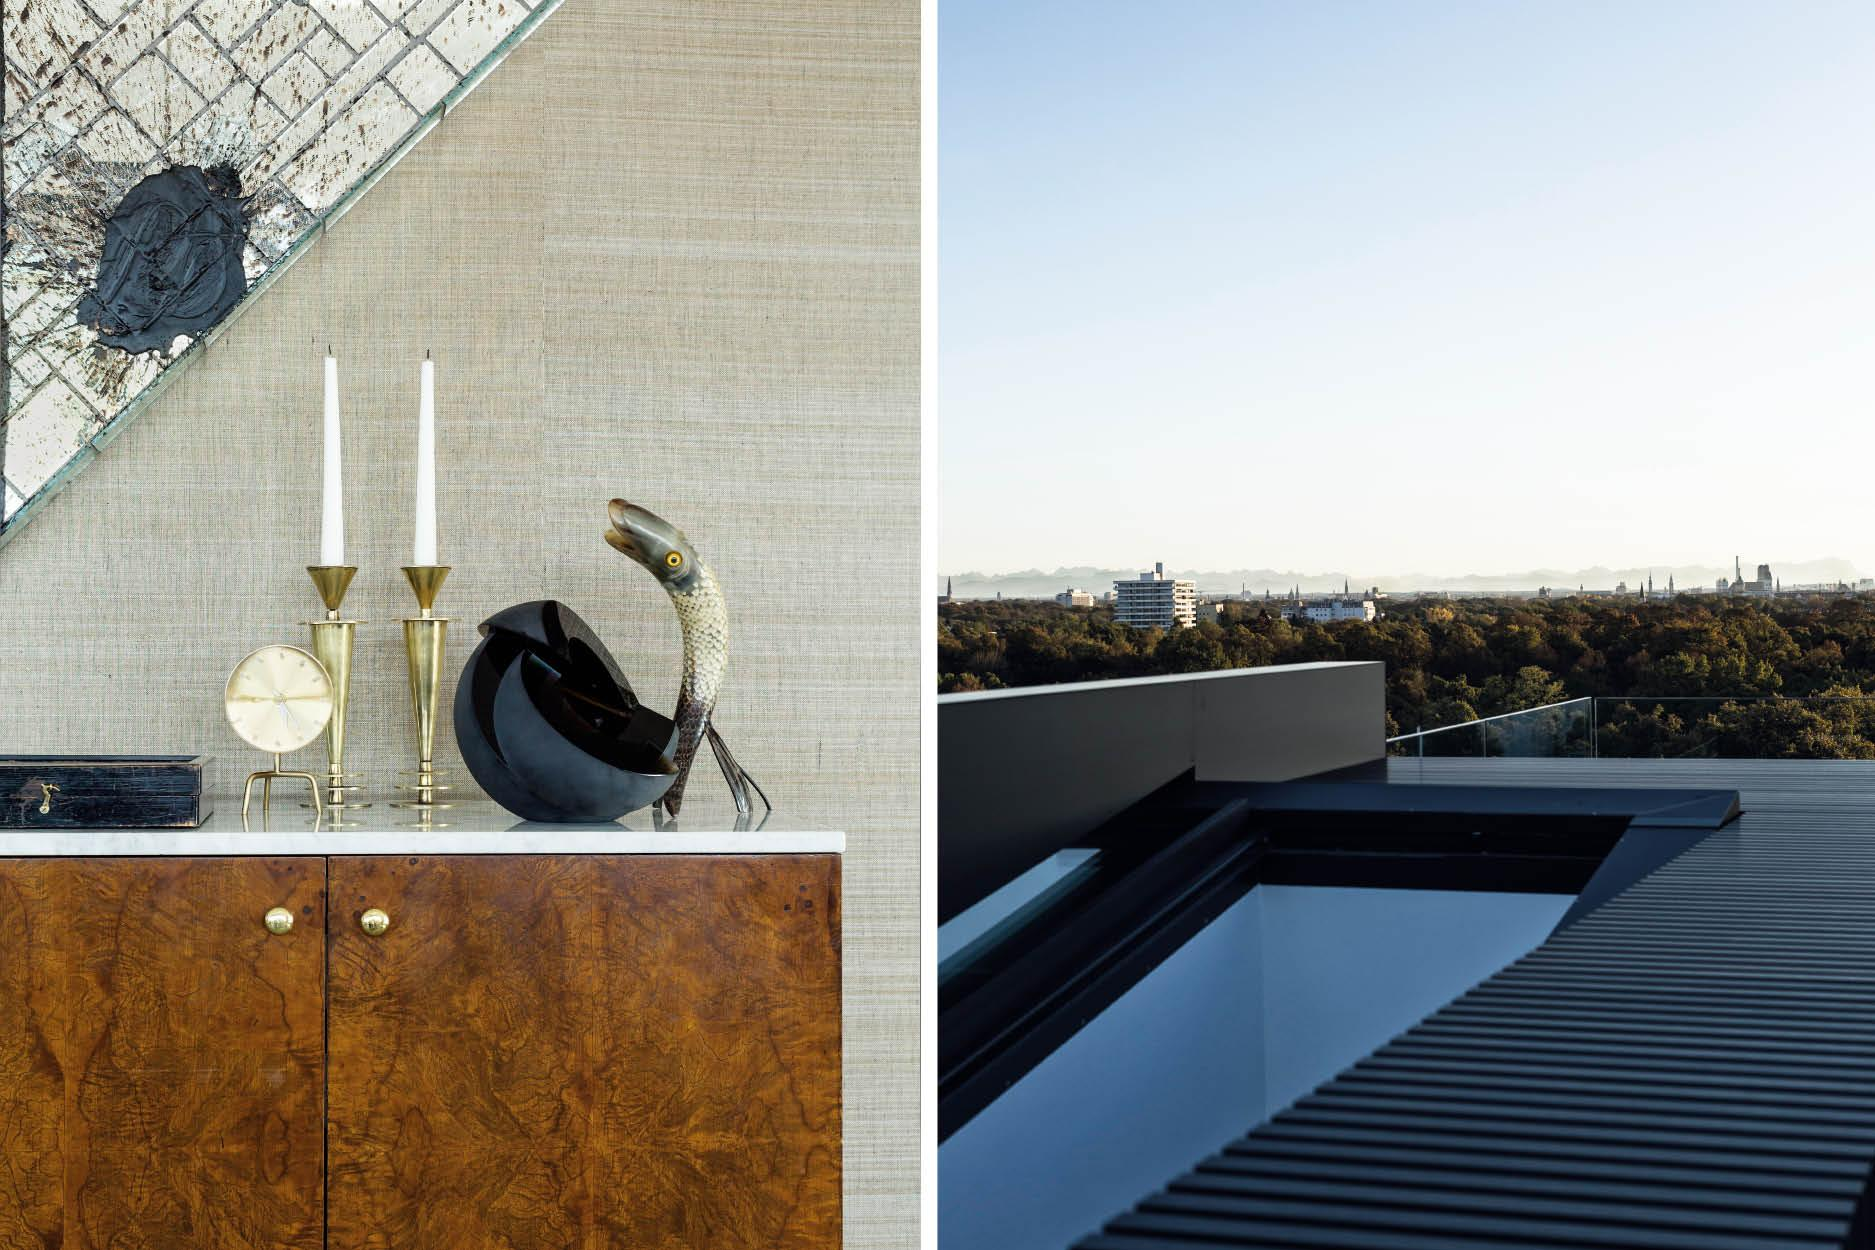 The roof terrace offers breathtaking views across Munich to the Alps